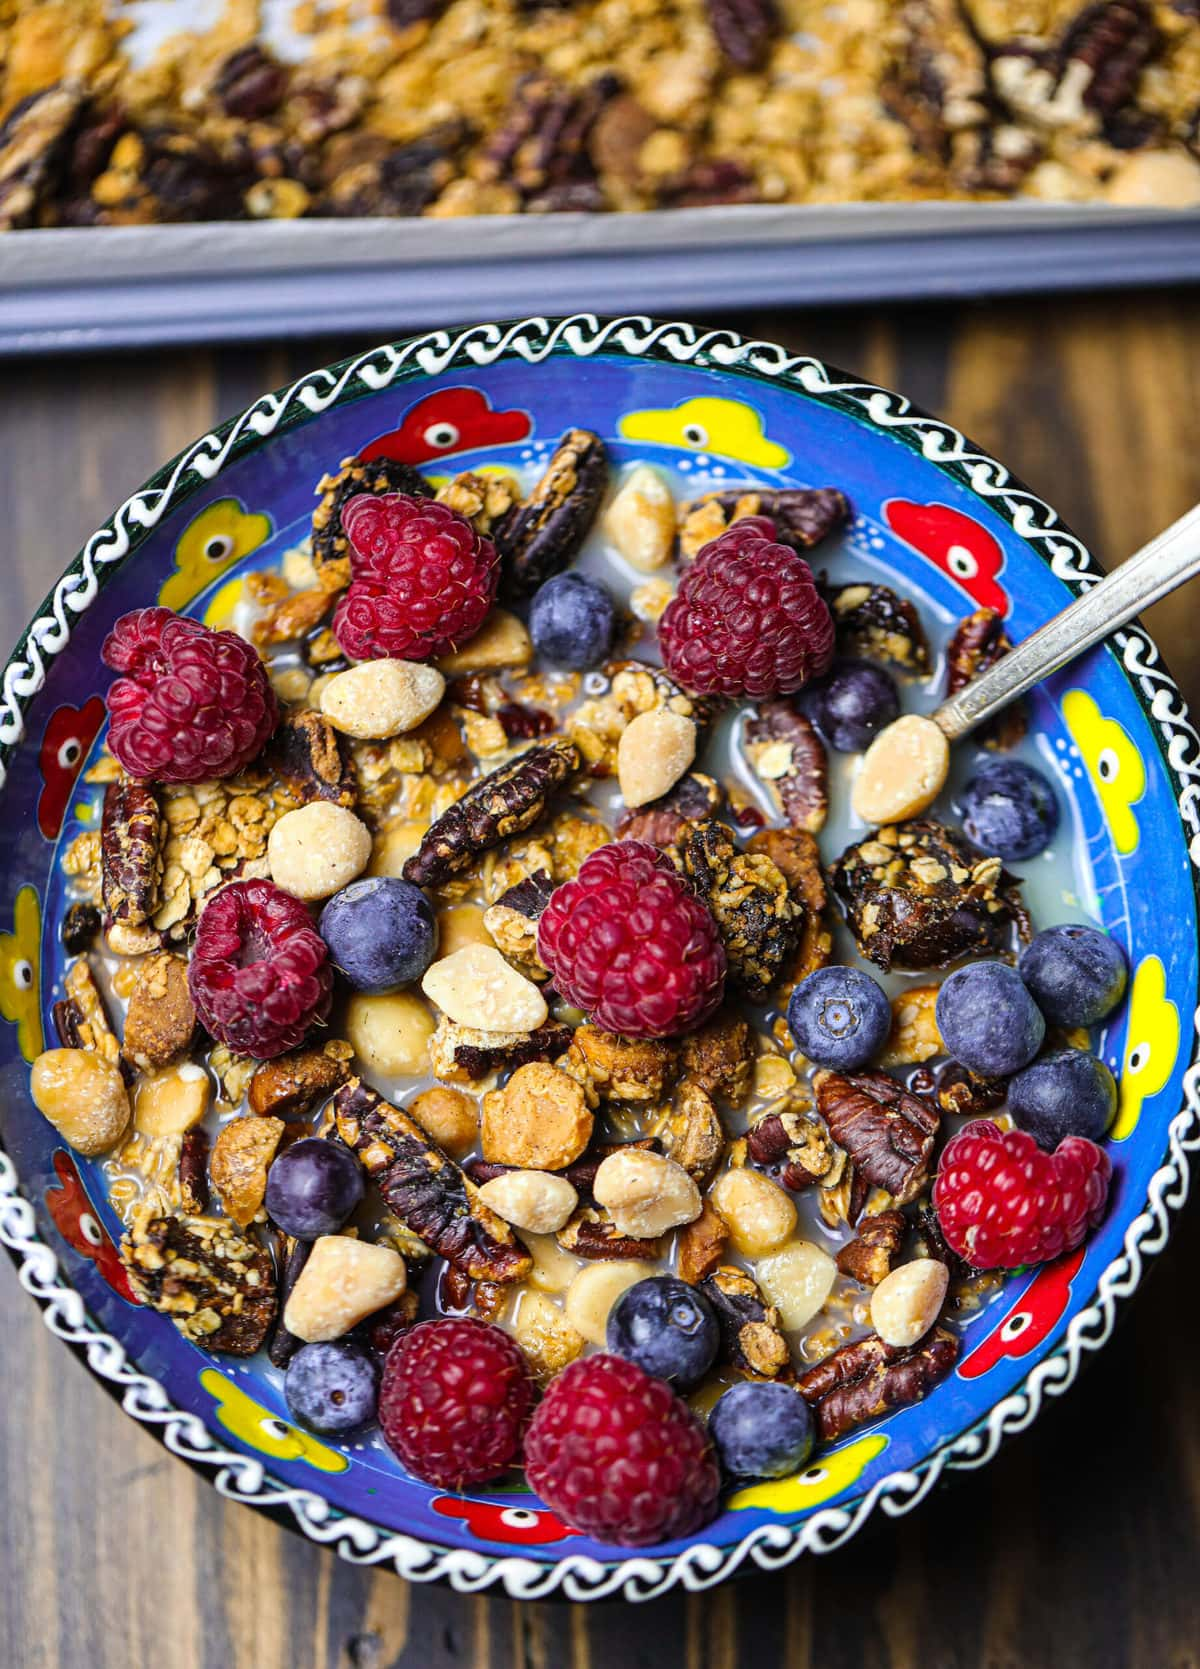 vegan granola with oat milk in a pretty decorated blue bowl on a wooden table